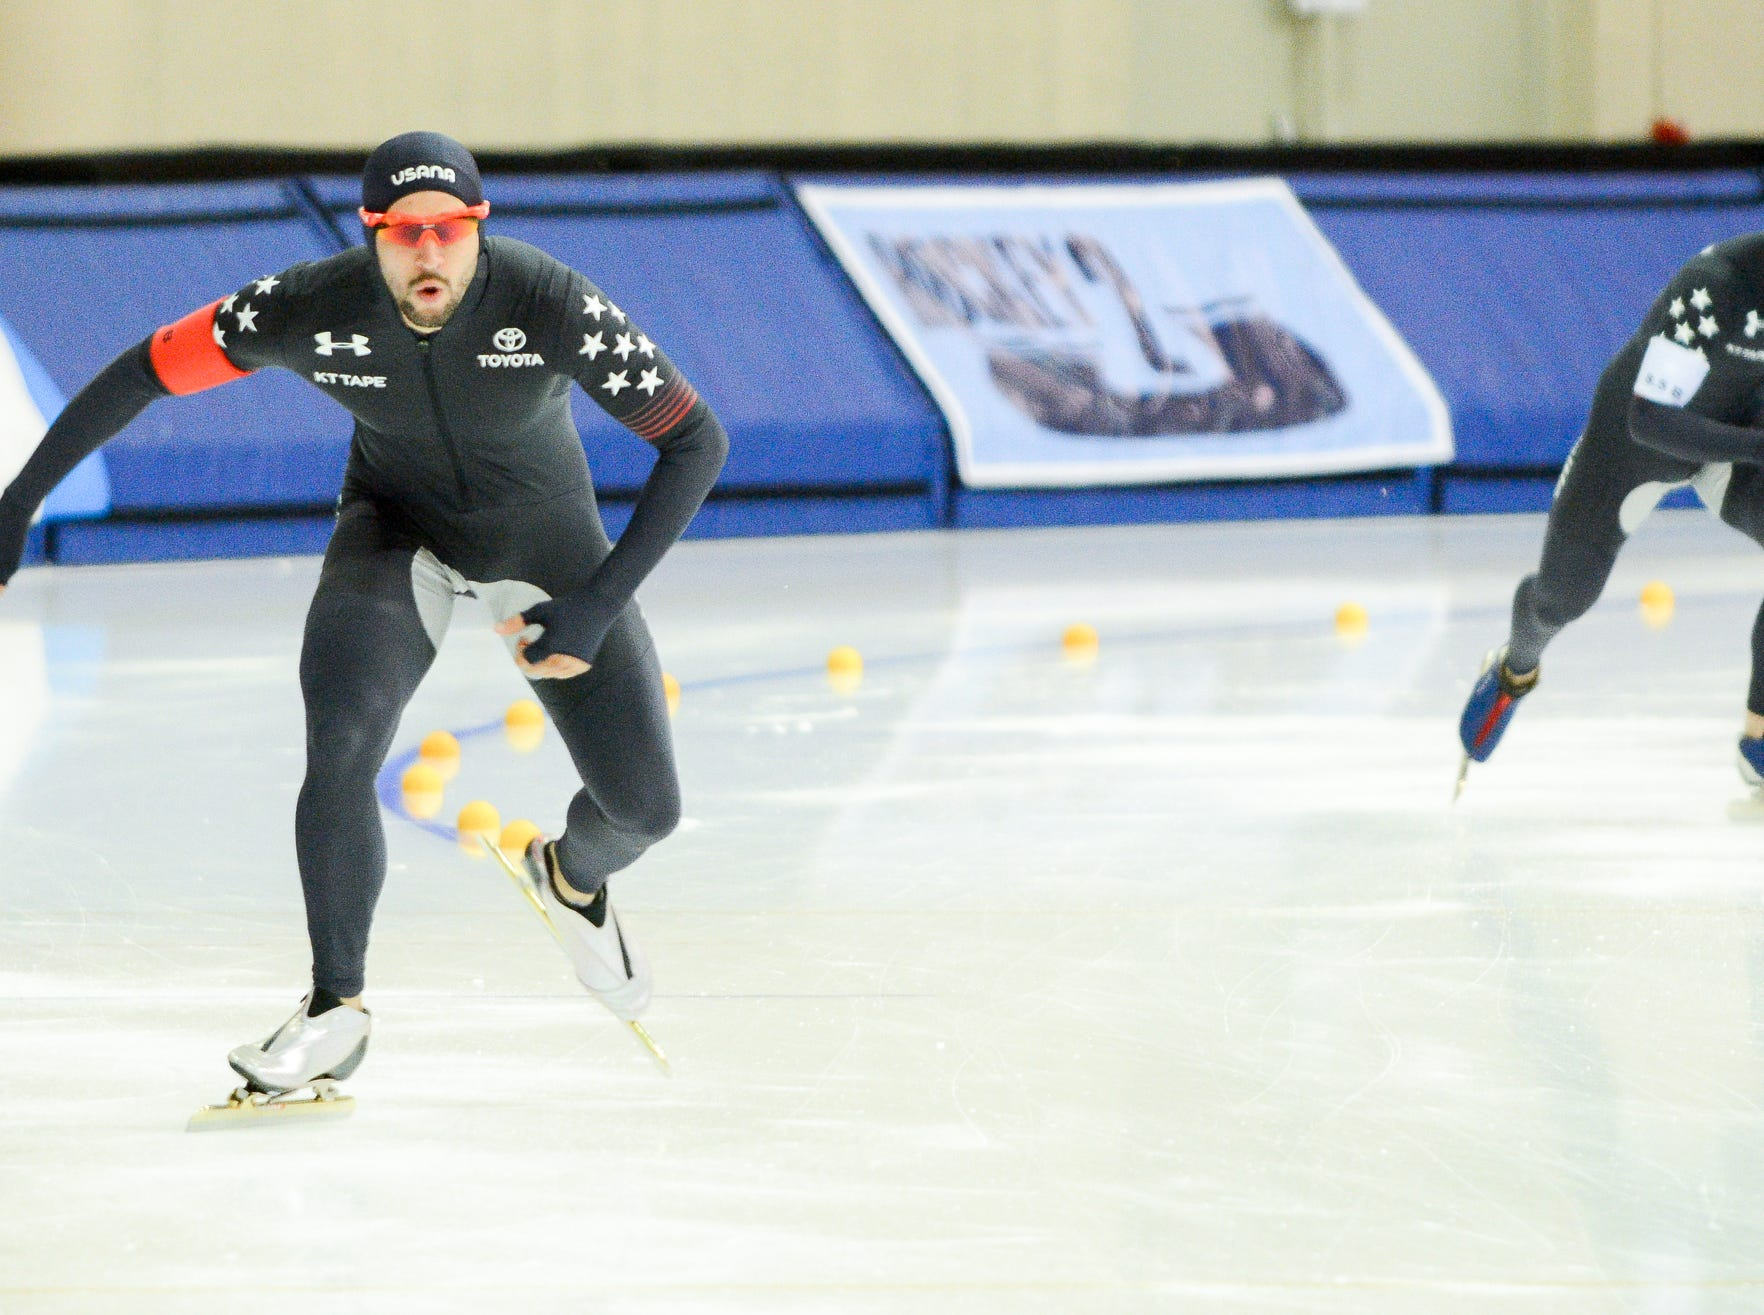 Justin Stelly (left) and Austin Kleba compete in the mens 1,500 meters at the U.S. World Cup qualifying event Sunday, November 4, 2018, at the Pettit National Ice Center. Stelly finished second in the event.